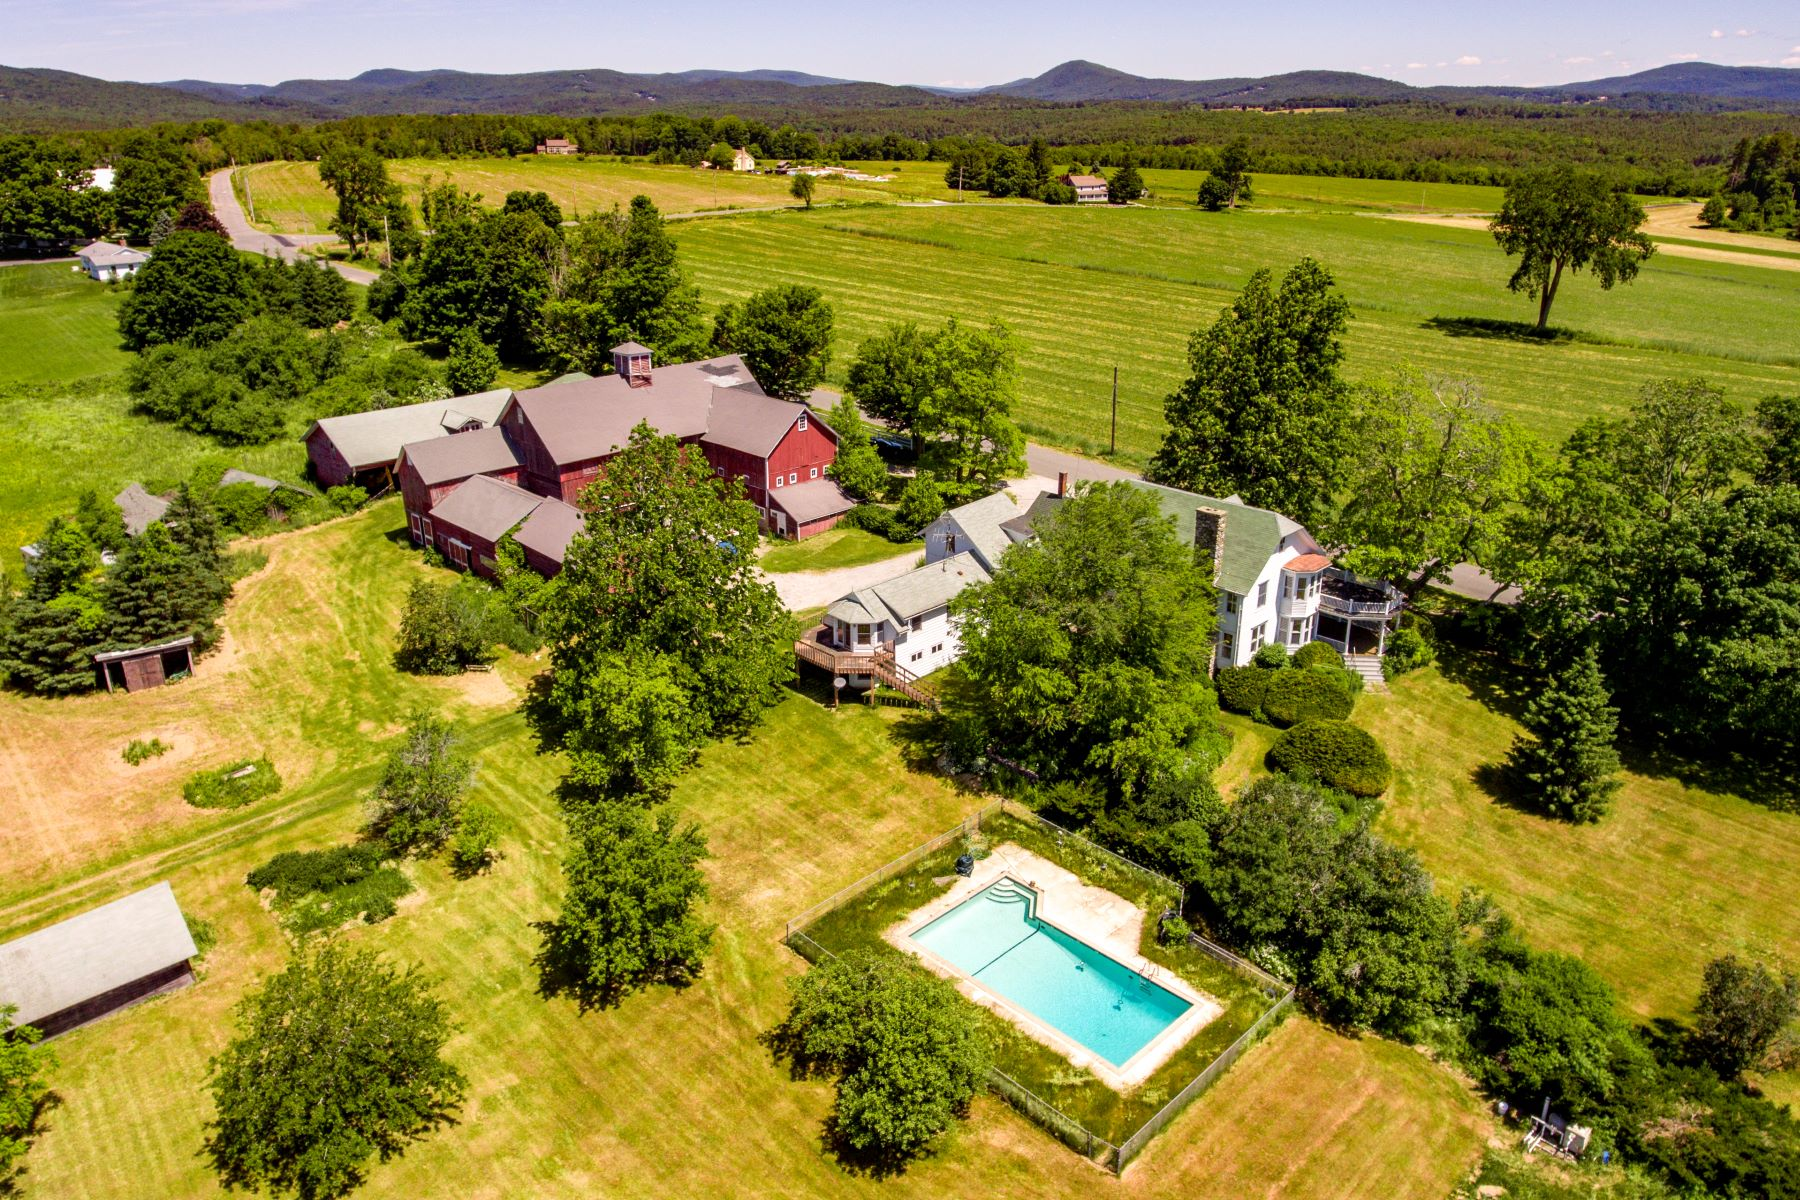 Single Family Home for Sale at Baldwin Hill Farm - an Iconic Berkshire Property 121 Baldwin Hill Rd Egremont, Massachusetts 01258 United States